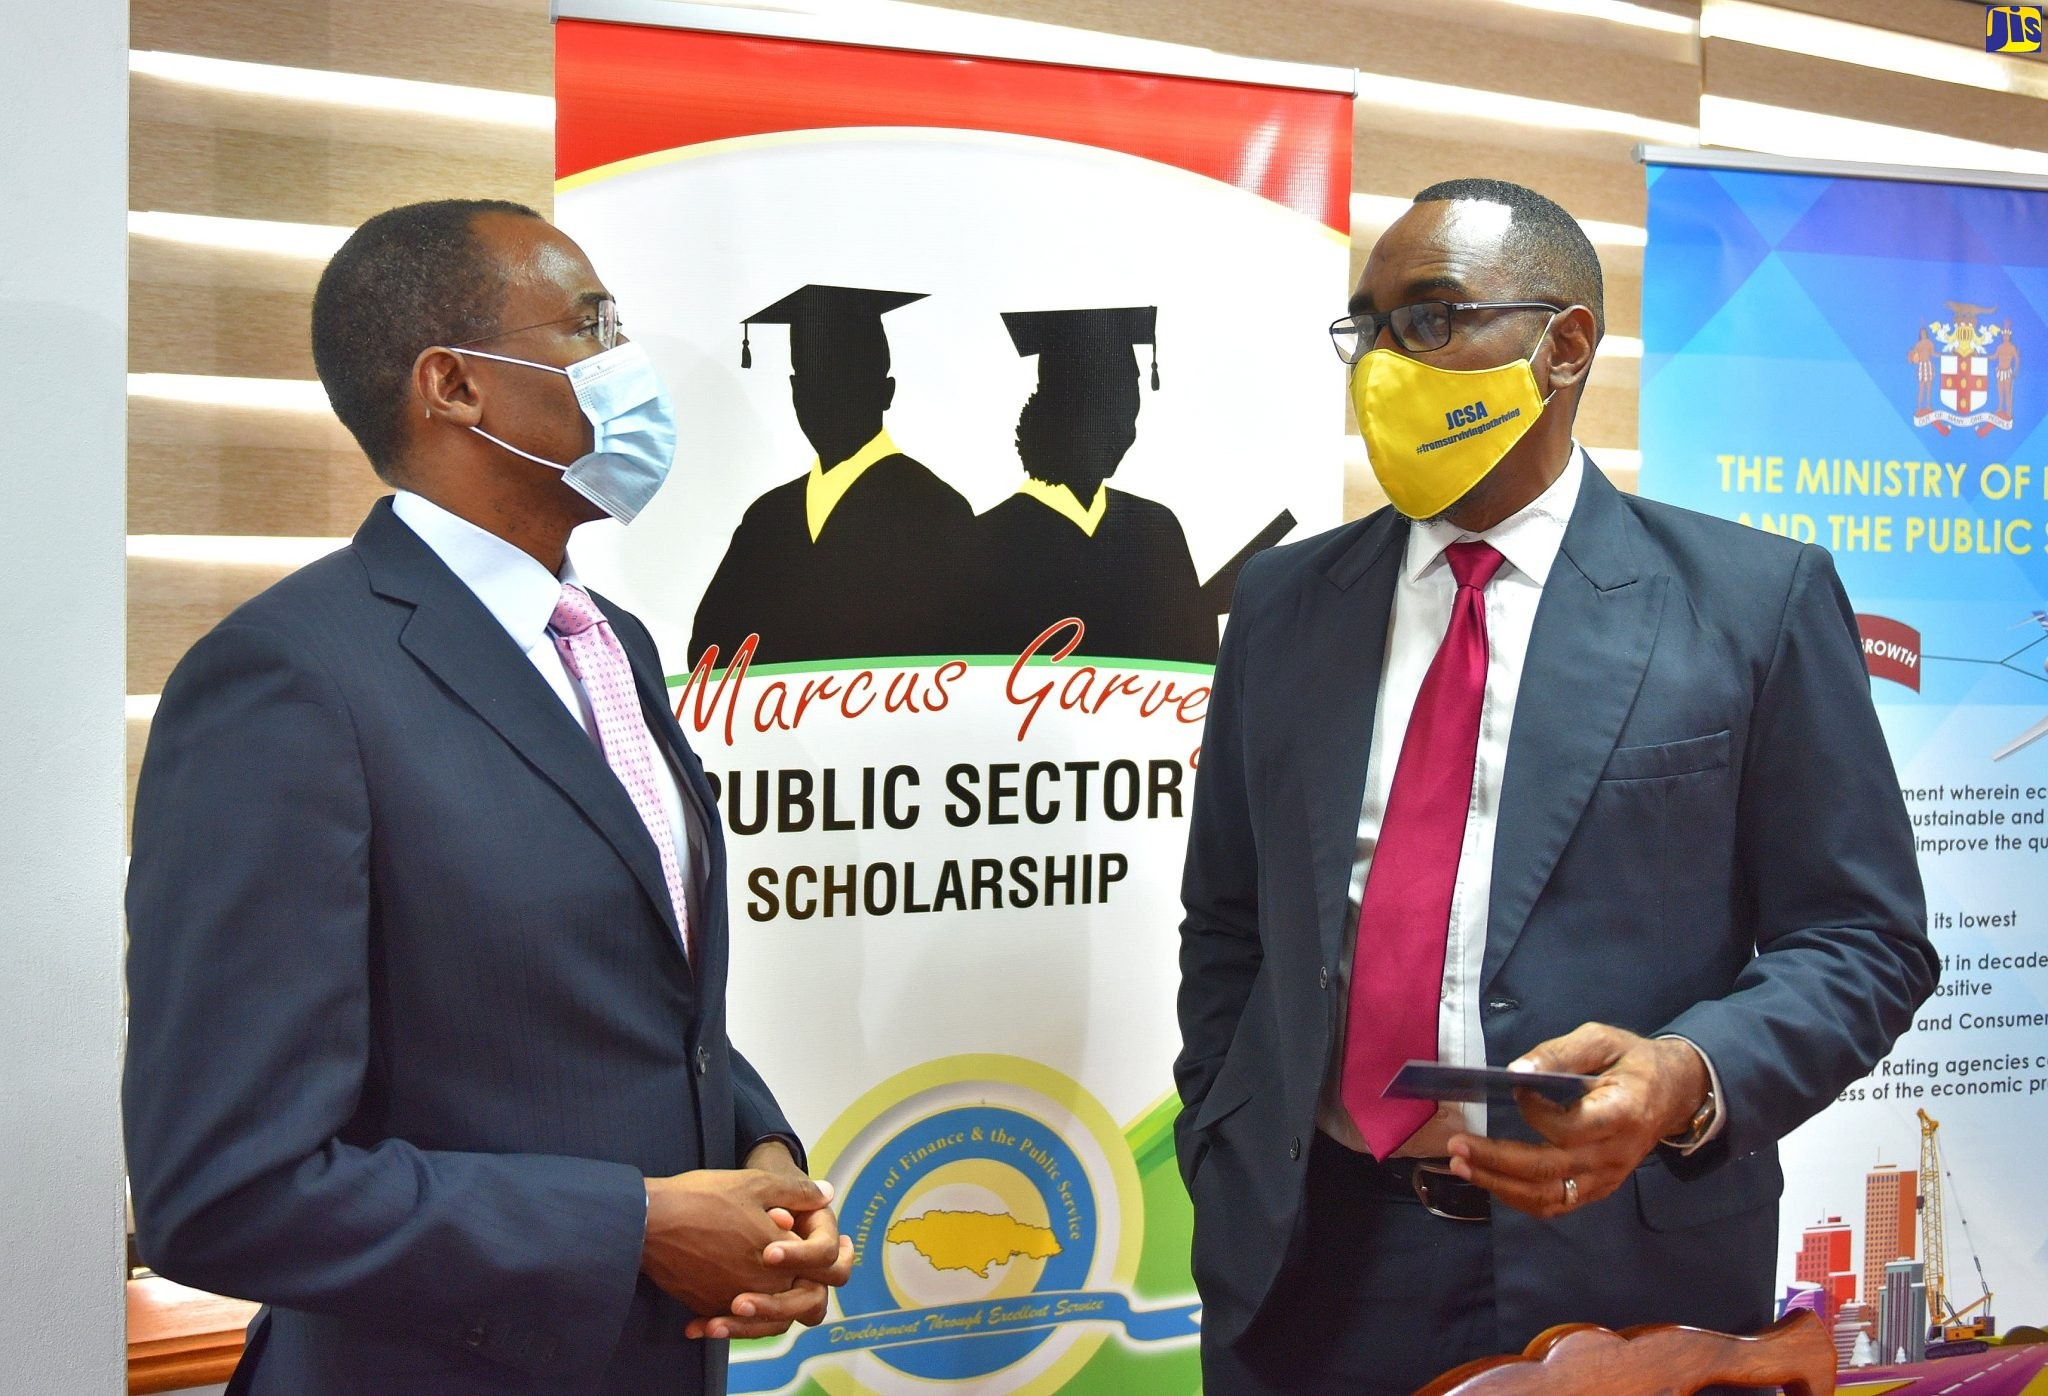 Over the next five (5) years, the Government of Jamaica will be providing 150 postgraduate scholarships for civil servants, valued more than $1 billion, as part of the human capital development thrust within the public service.